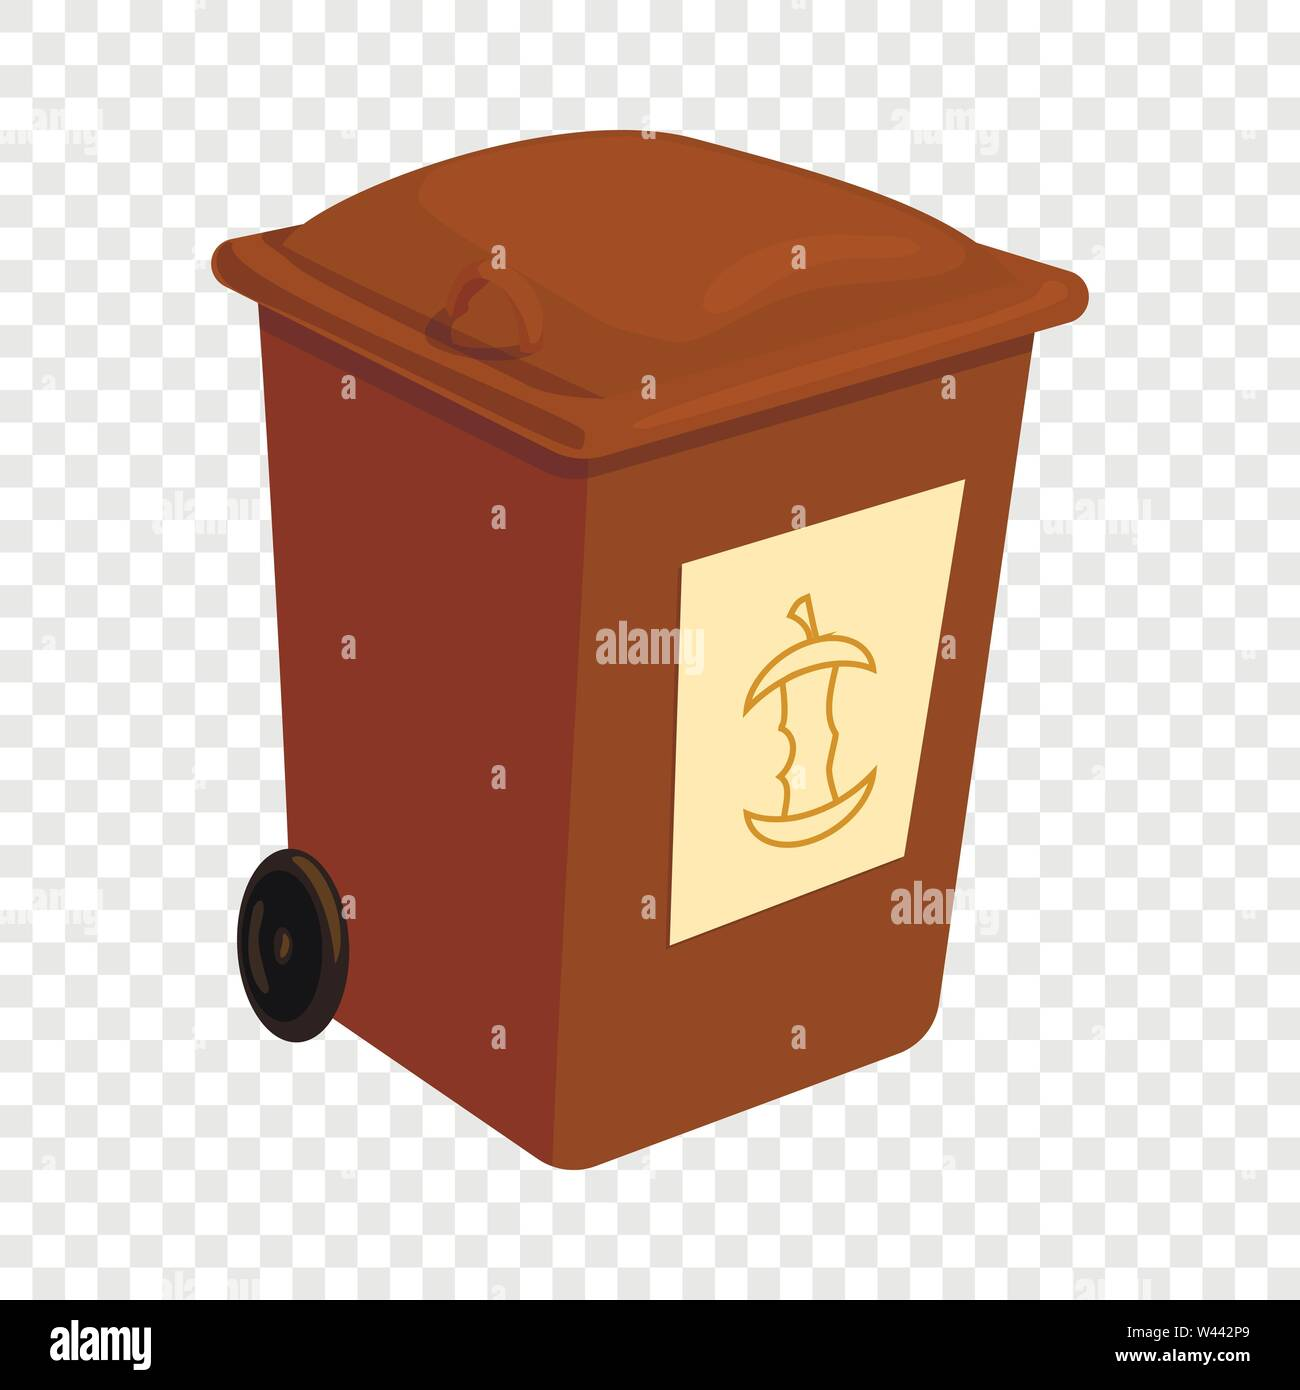 Brown trashcan icon, cartoon style - Stock Image